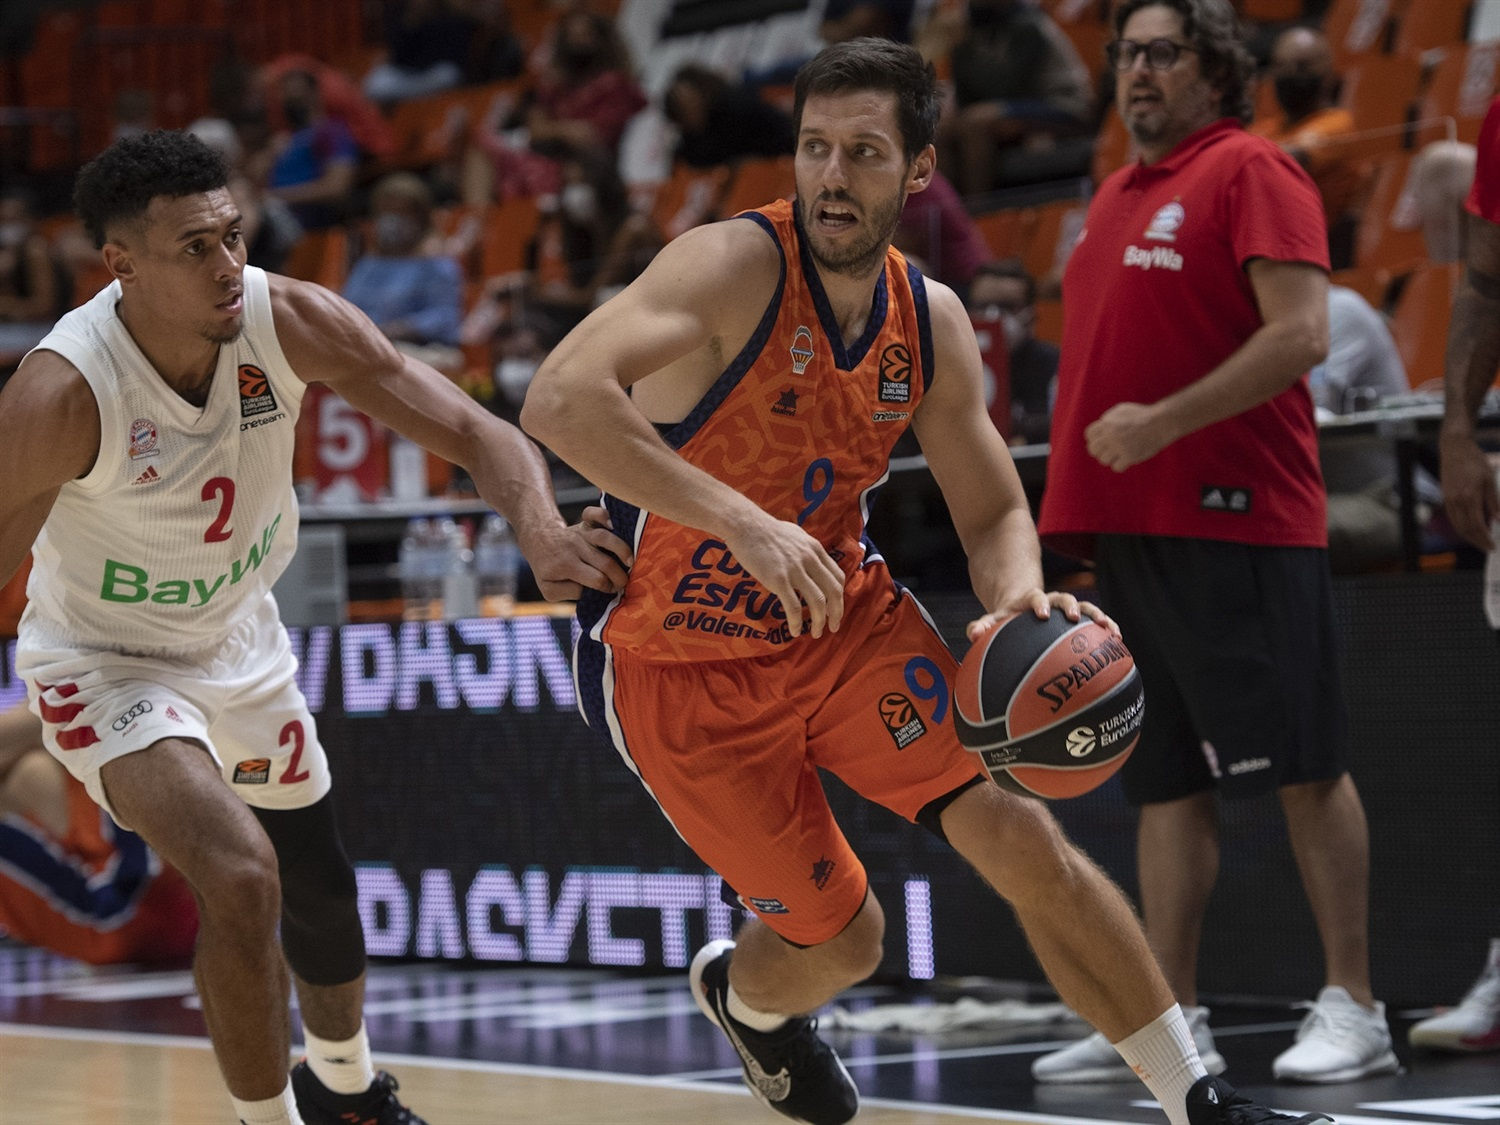 Sam Van Rossom - Valencia Basket - Preseason Tournament Valencia 2020 - EB20